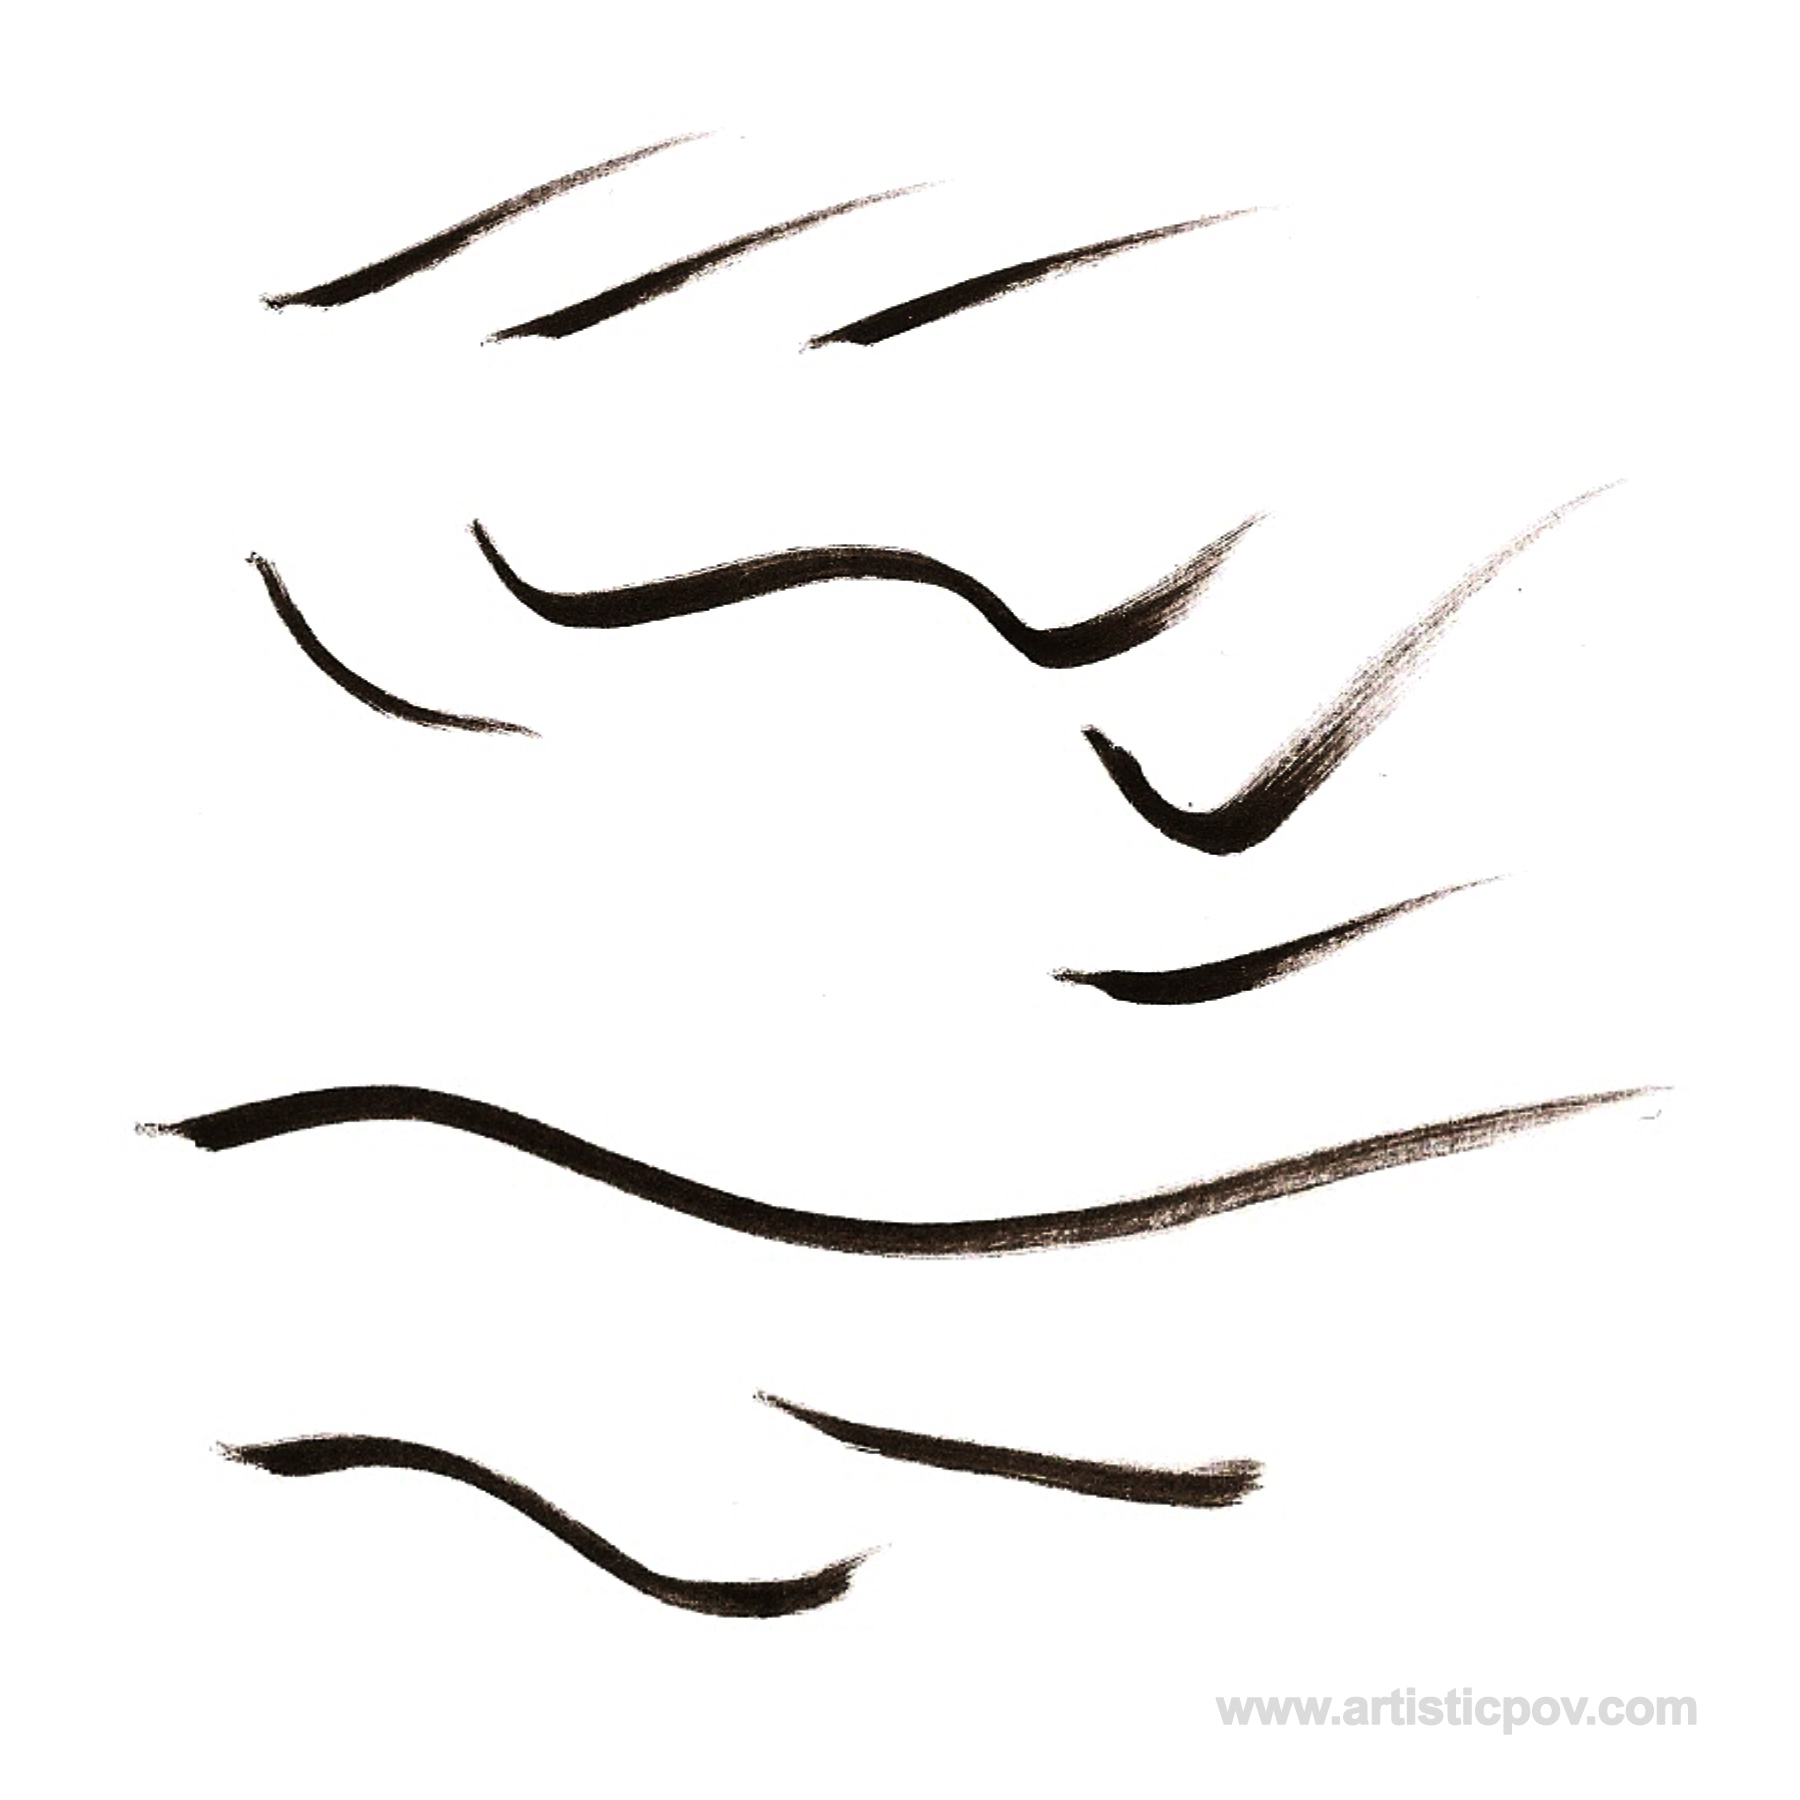 4 Copic Multiliner Brush Strokes